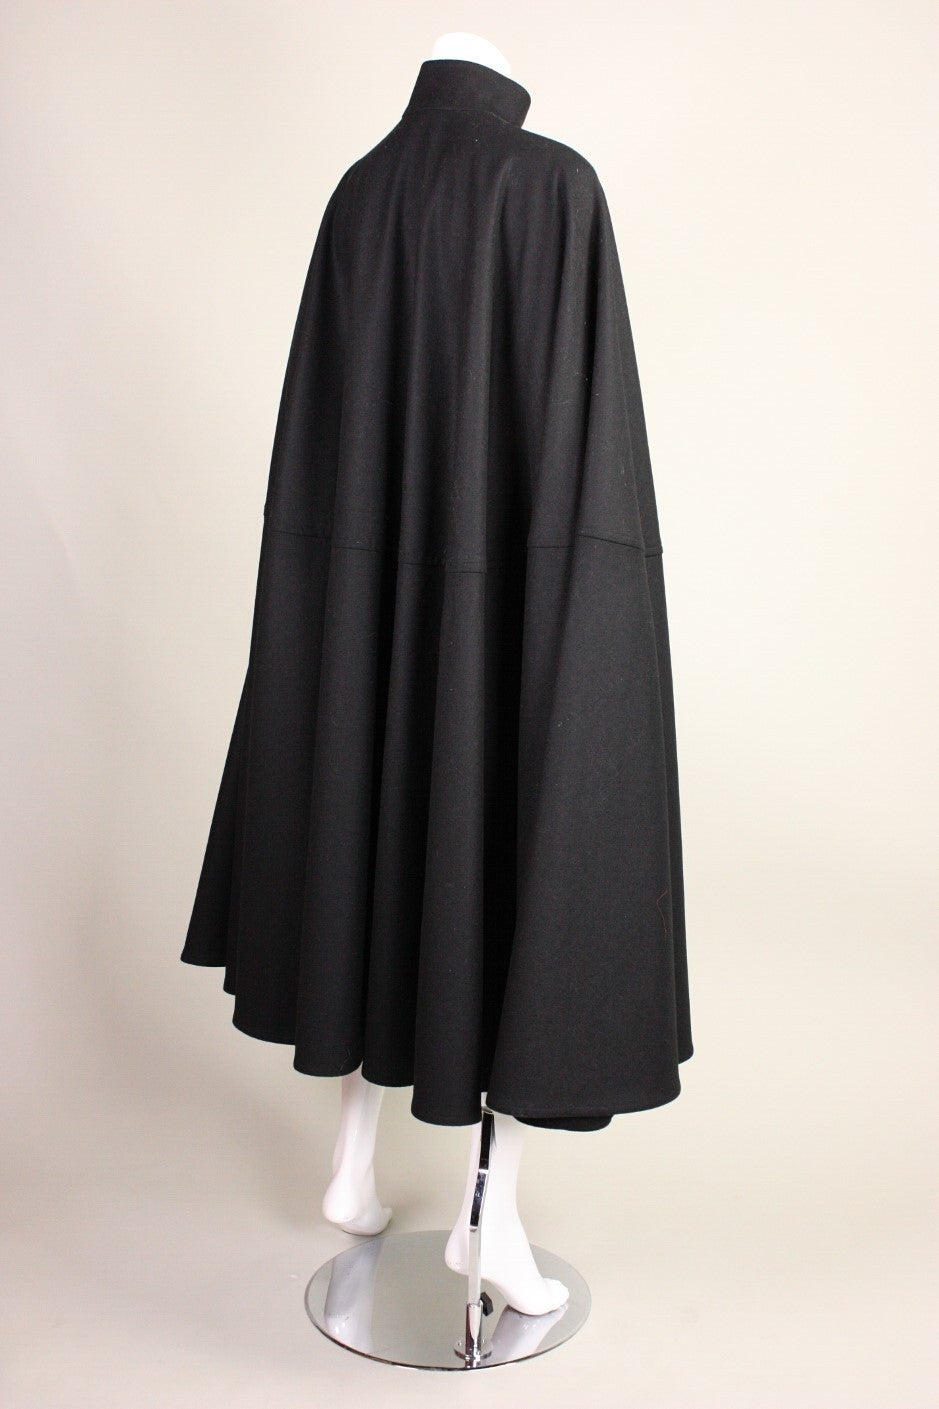 1970's Yves Saint Laurent Black Wool Cape In Excellent Condition For Sale In Los Angeles, CA